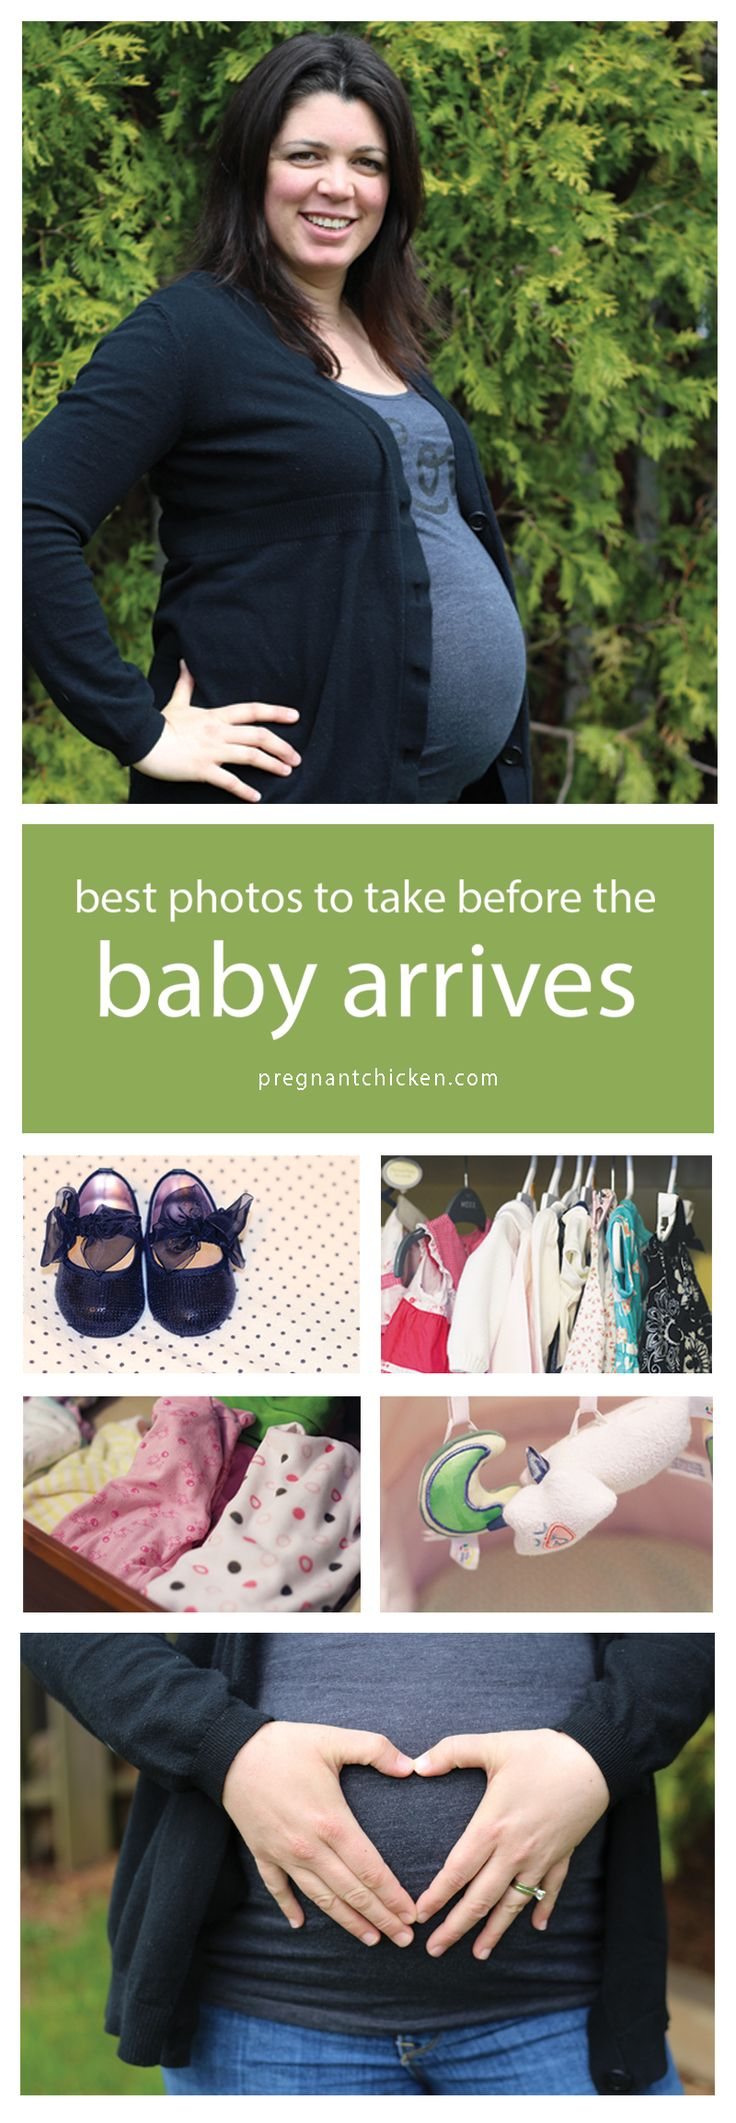 Best Photos to Take Before the Baby Arrives